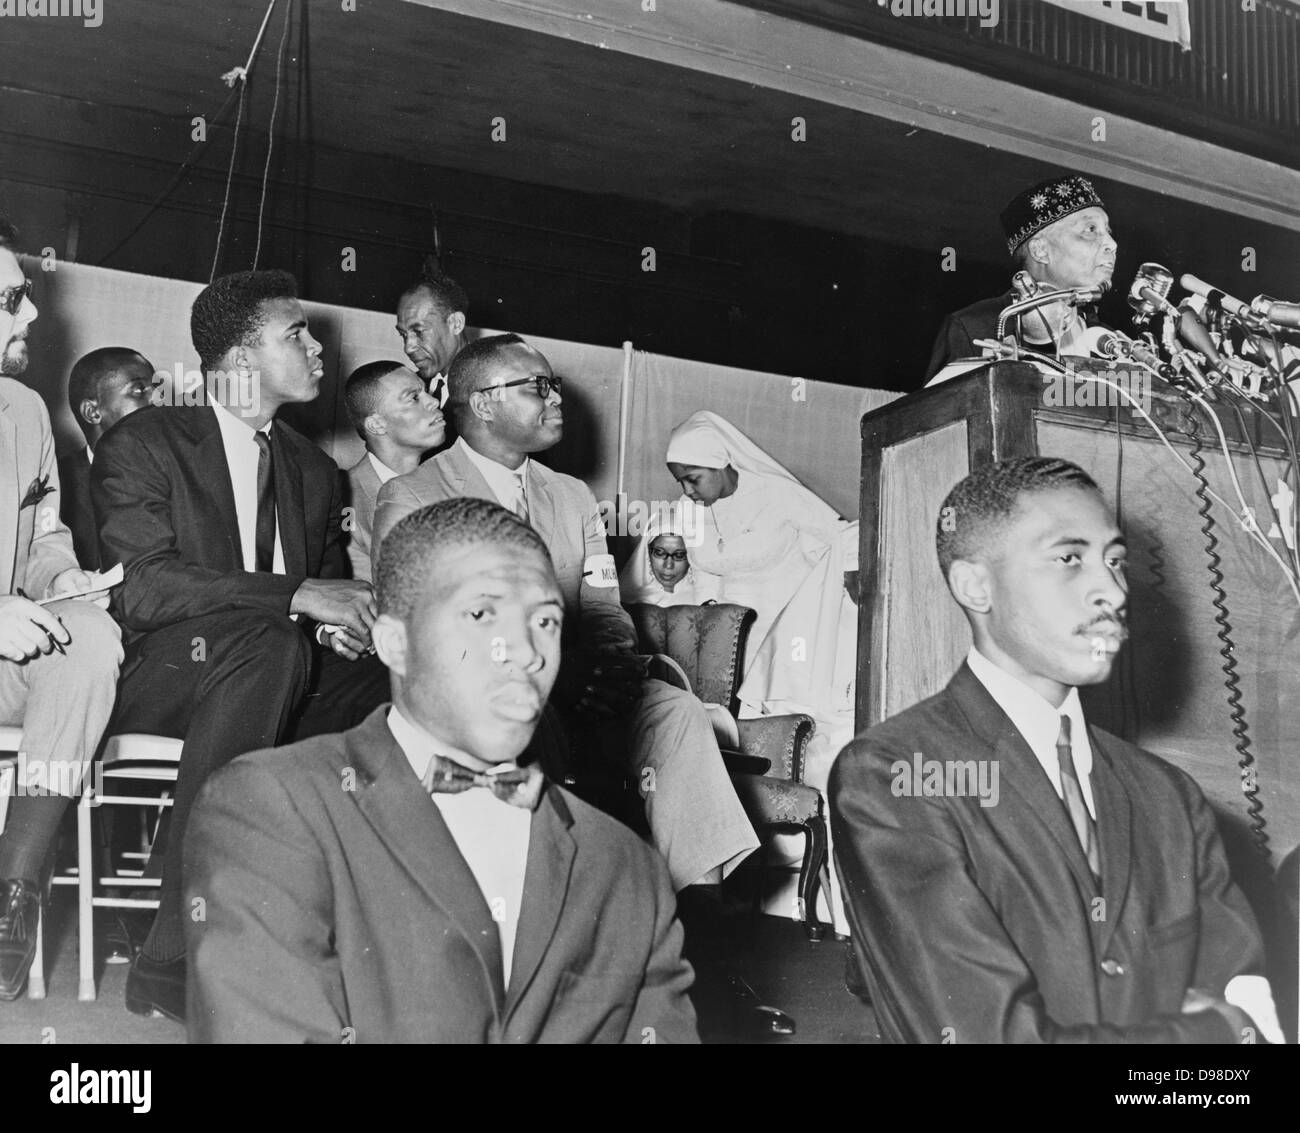 Elijah Muhammad (1897-1975, born Elijah Poole). Converted to Islam in 1931, from 1934 until his death be was leader - Stock Image